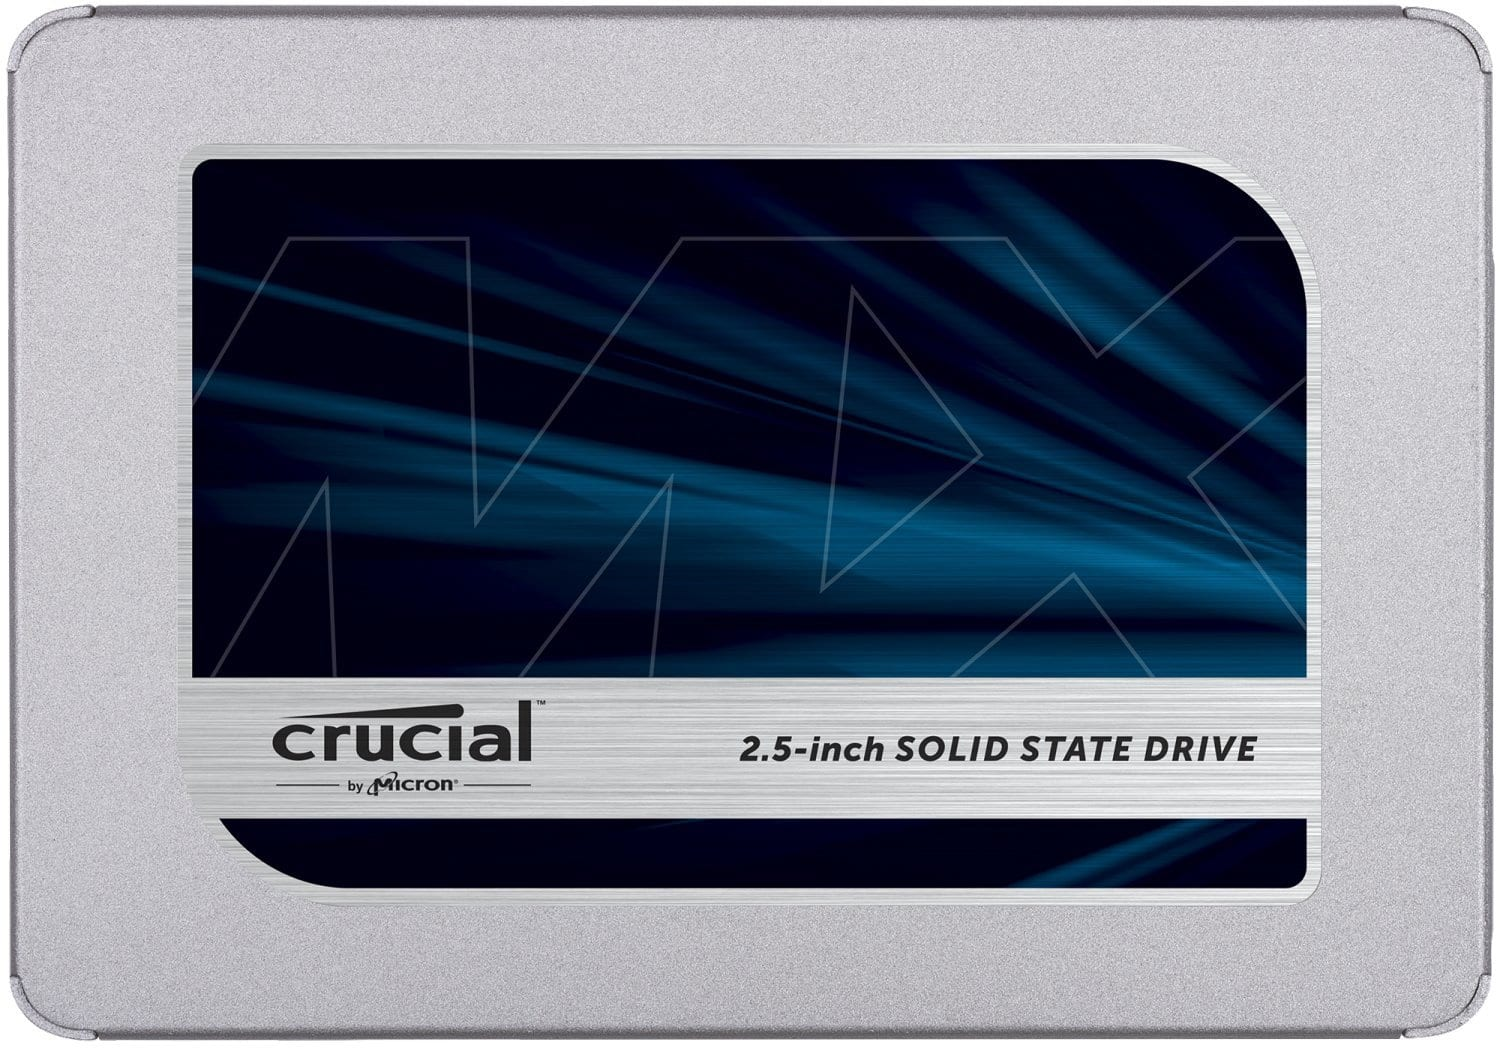 "Crucial MX500 1TB 2.5"" SATA SSD - $97 at Amazon $96.99"